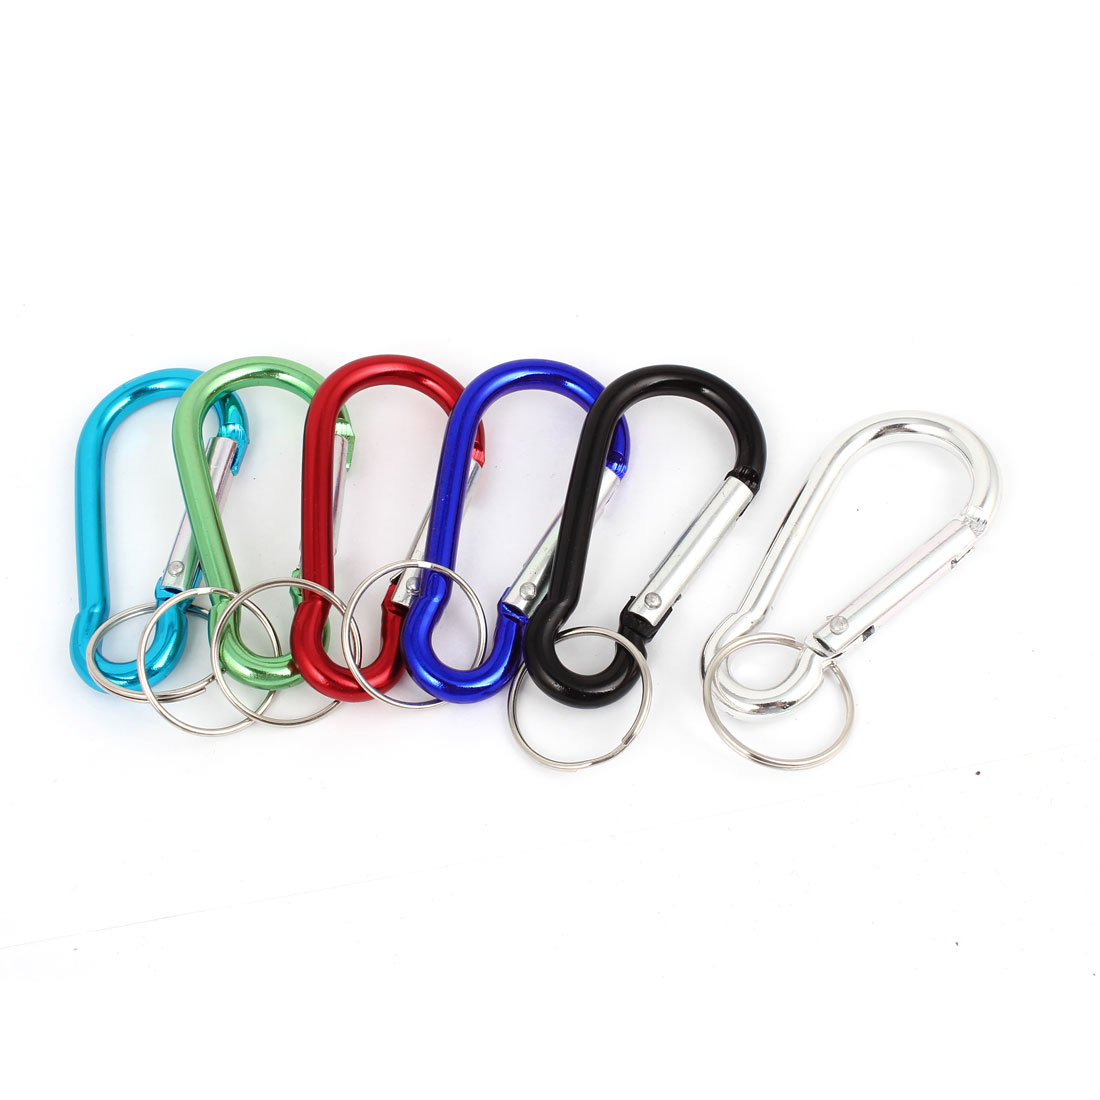 Outdoor Hiking Keychain Key Ring Spring Loaded Carabiners Hooks Assorted Color 6 Pcs